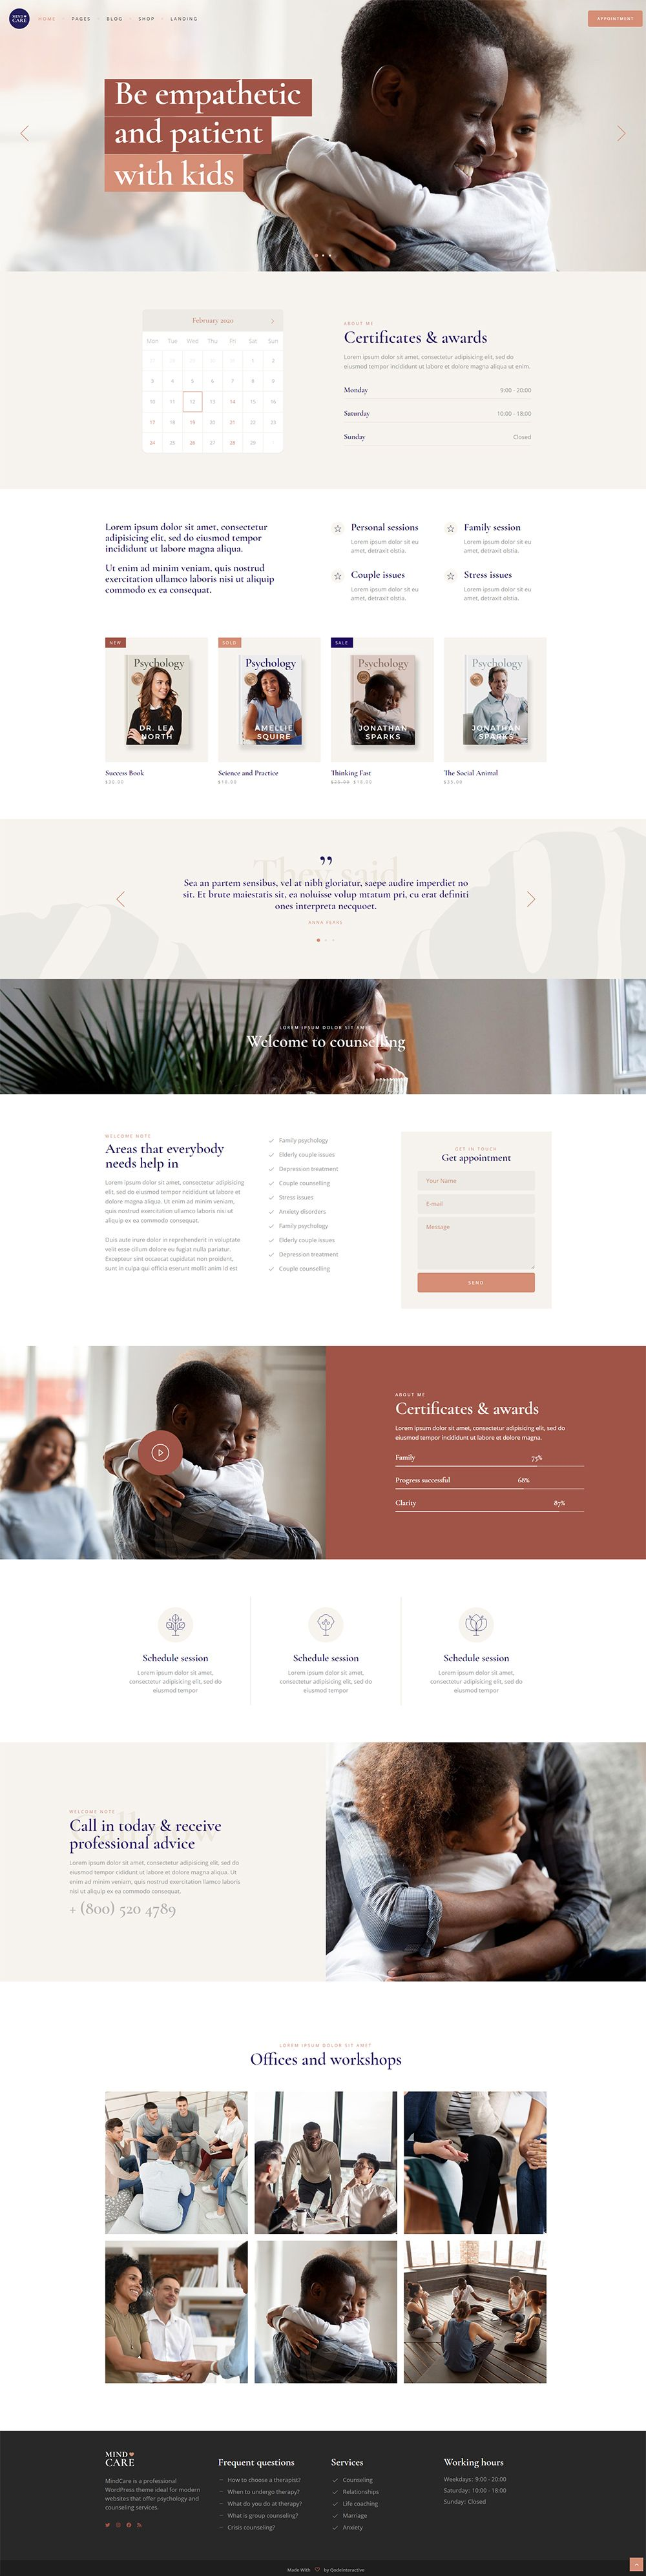 Mindcare Psychology Home In 2020 Professional Wordpress Themes Psychology Web Design Trends